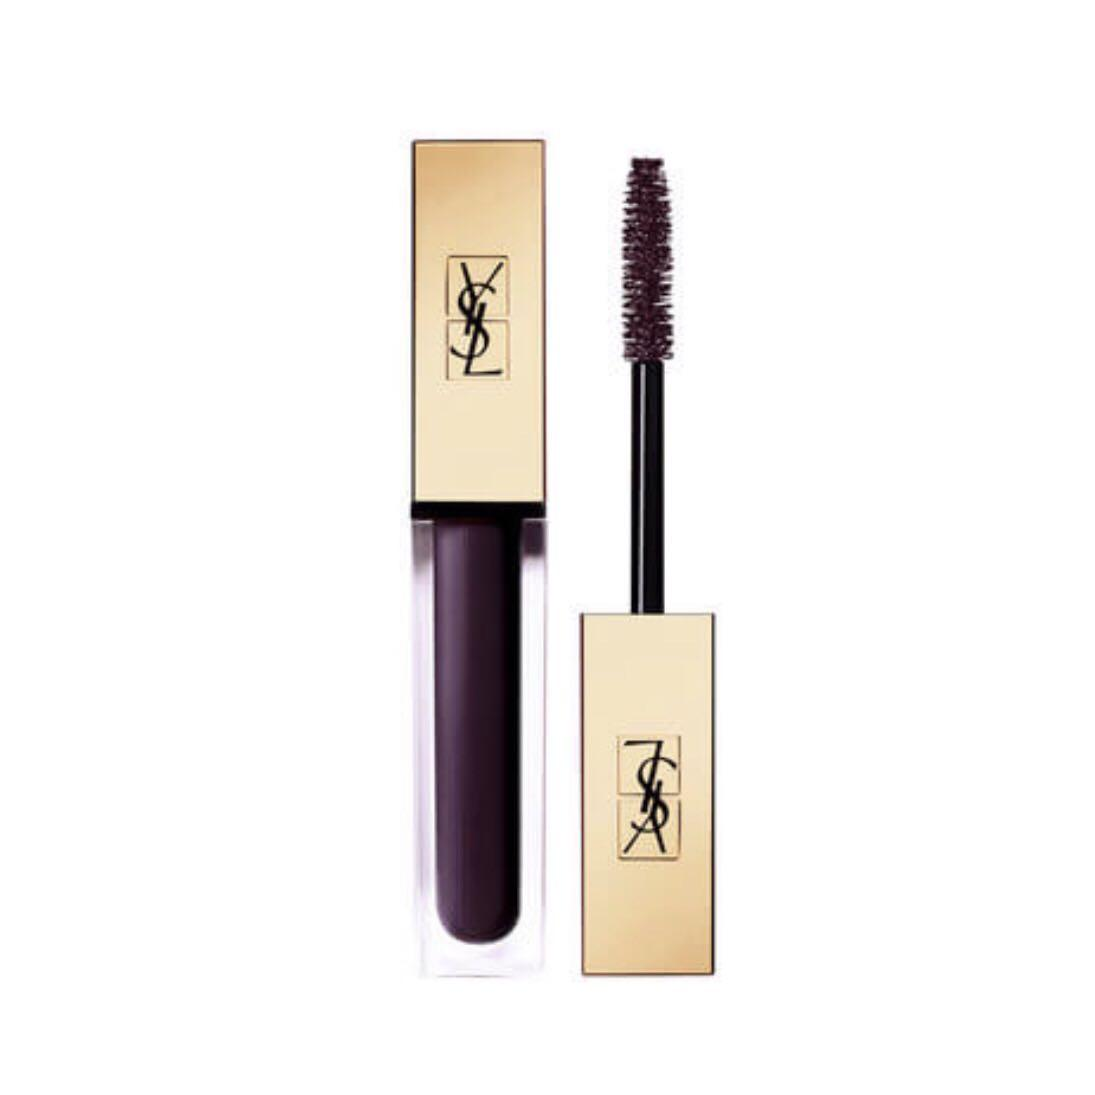 NEW - YSL Mascara Vinyl Couture RRP $57